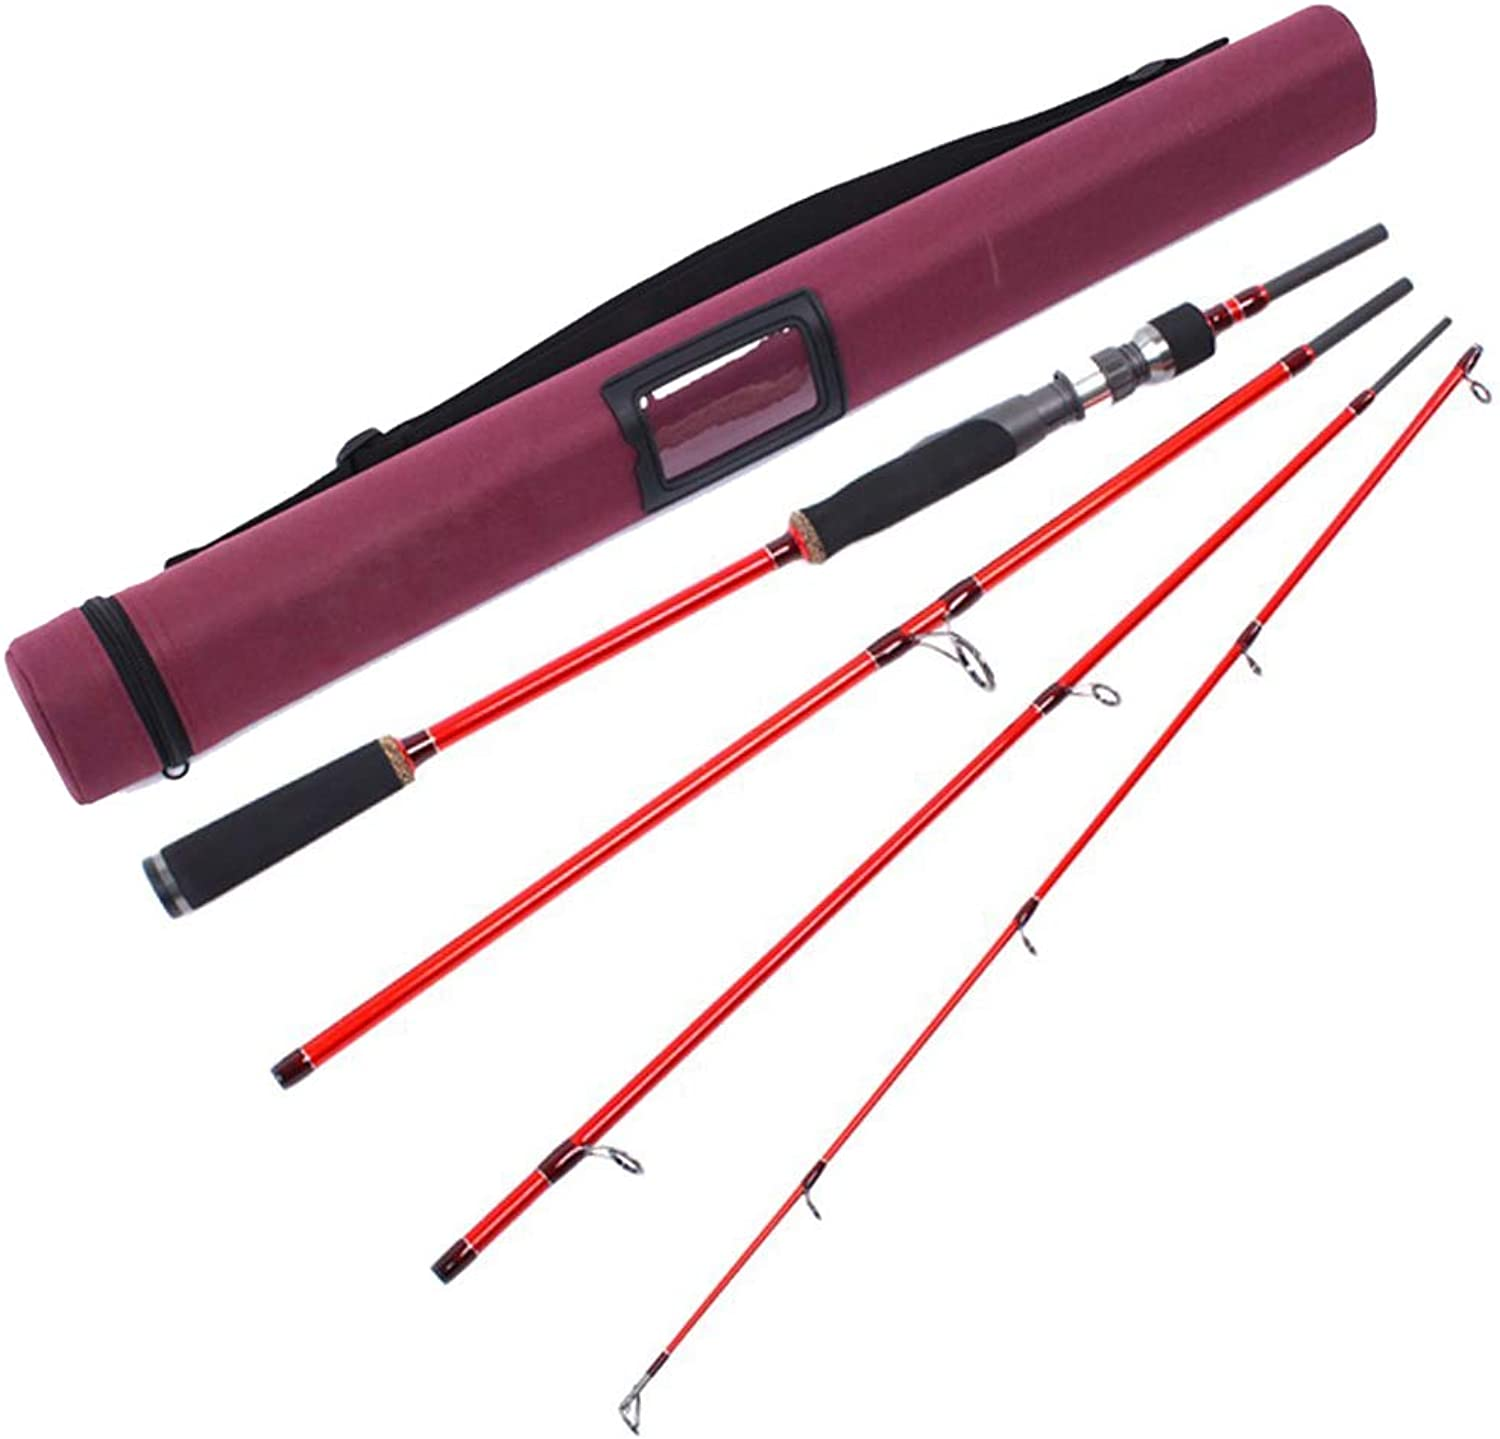 Rough Fish Series Aventik spinning rod Travel rod High Module Carbon IM8 4 Pieces Spinning Rod 7ft (2.1m) 812Ib Medium Heavy MH Line Weight Fast Action Light Weight Compact With Cordura Rod Tube